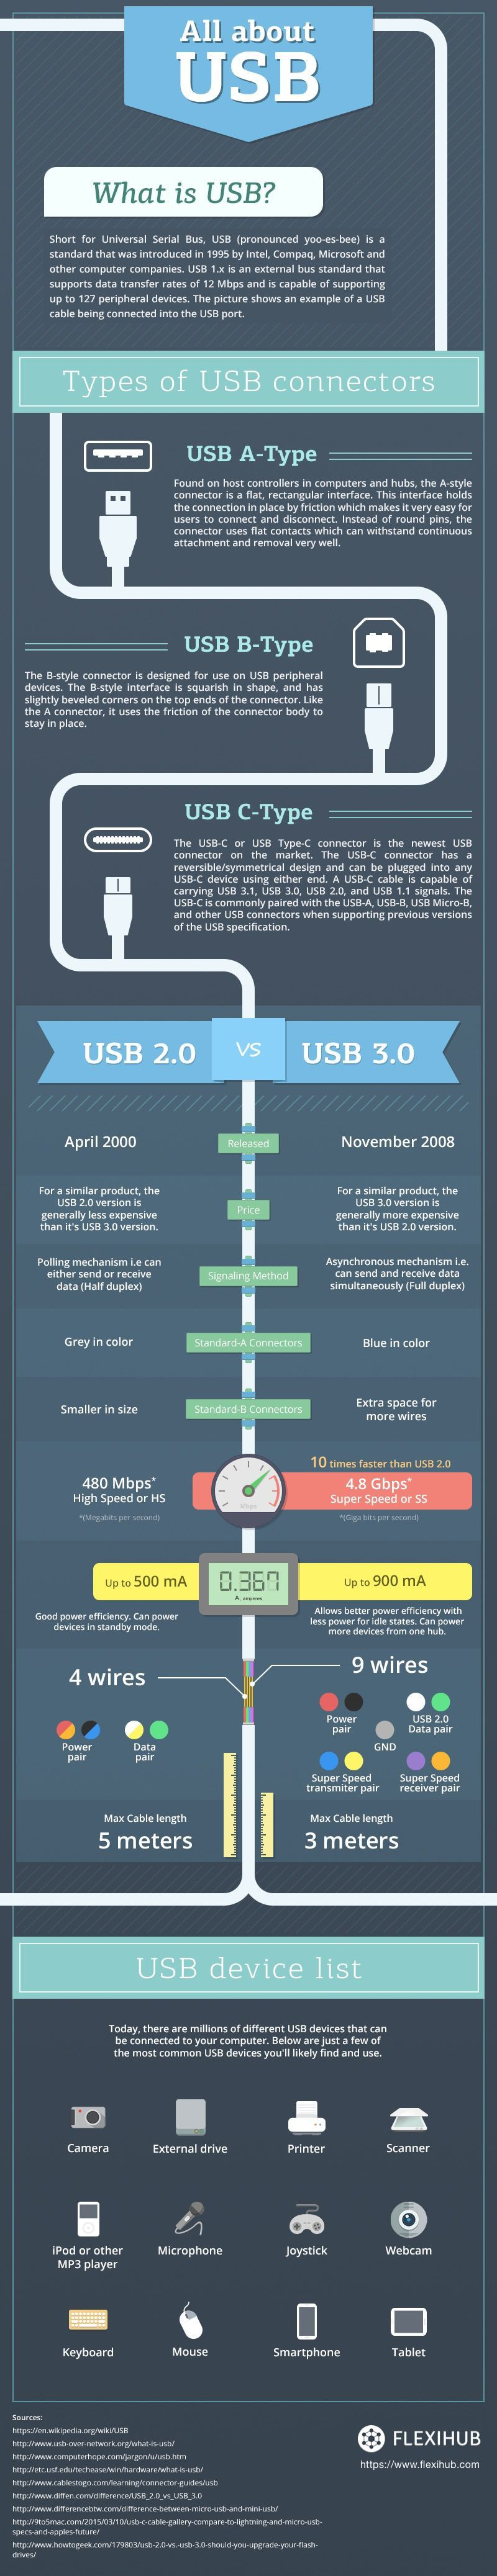 Everything You Wanted to Know About USBs - Infographic